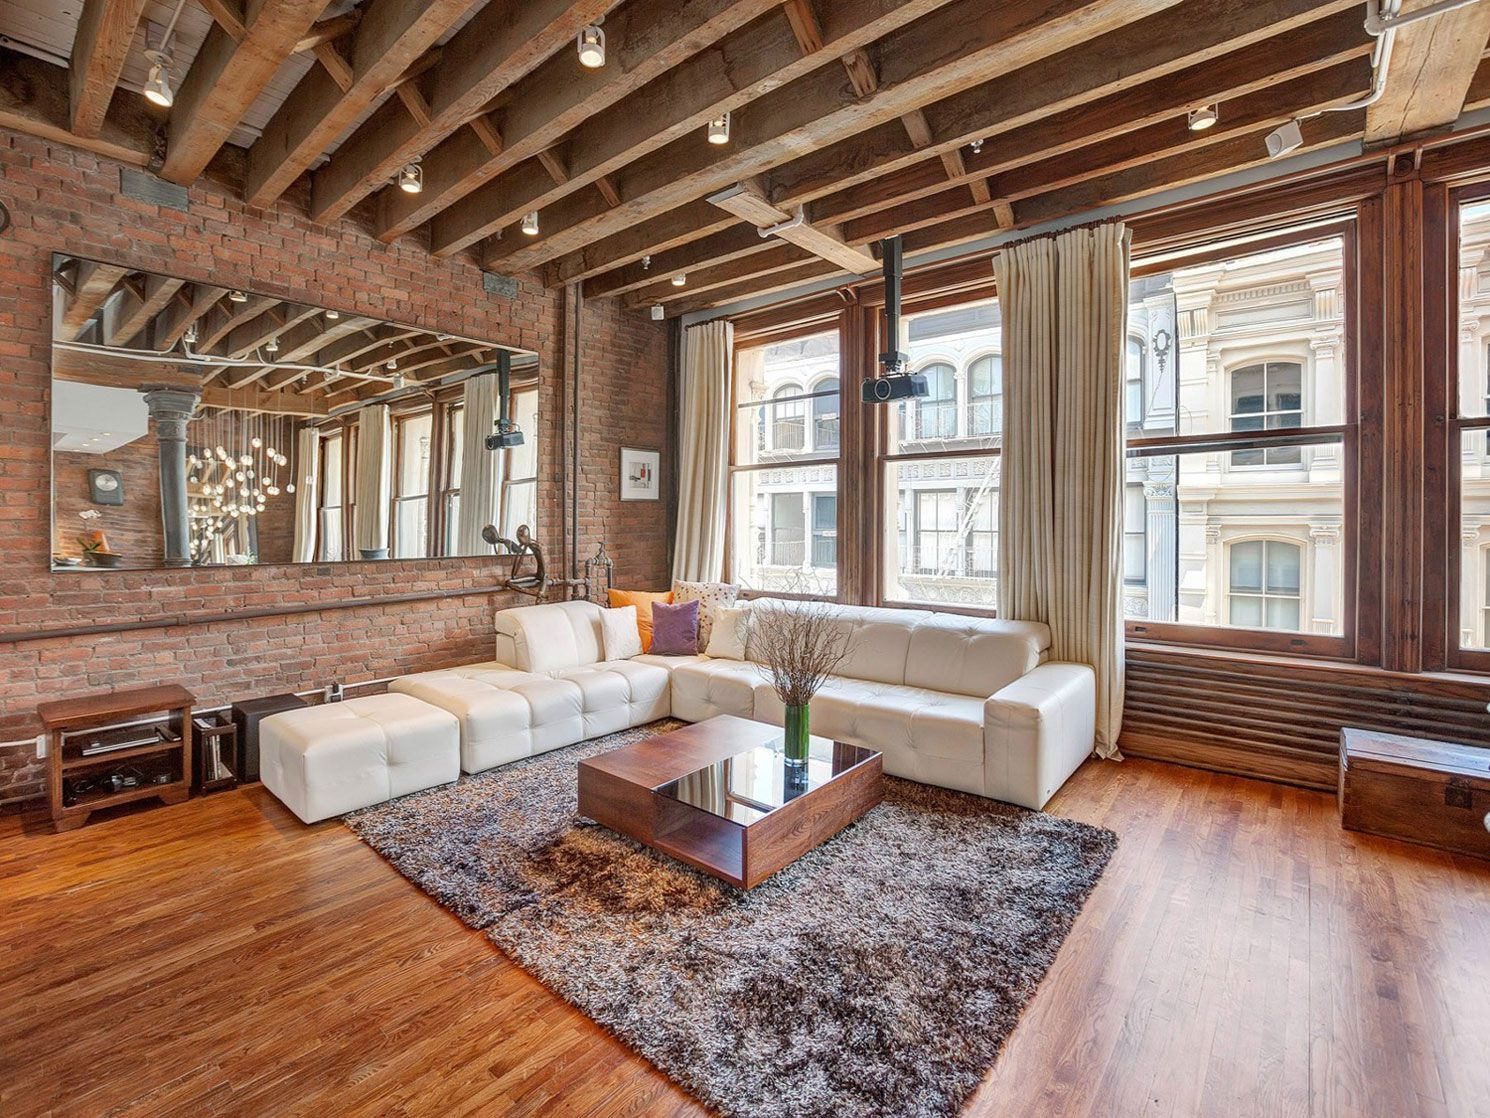 Ultimate Soho Exposed Brick and Wood Beams Loft on Prince Street in ...